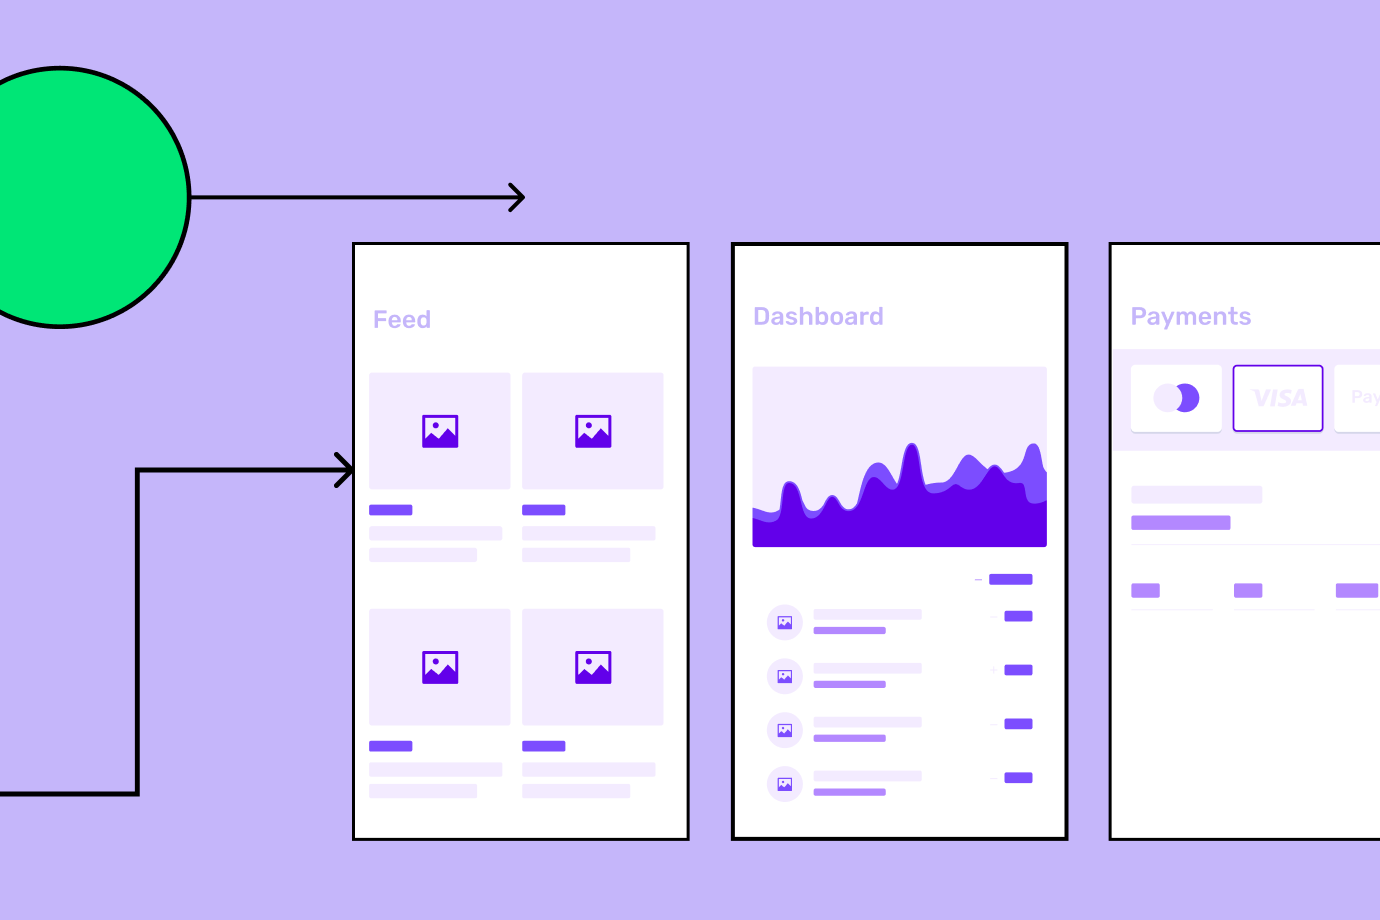 Sketches of app screens on purple background